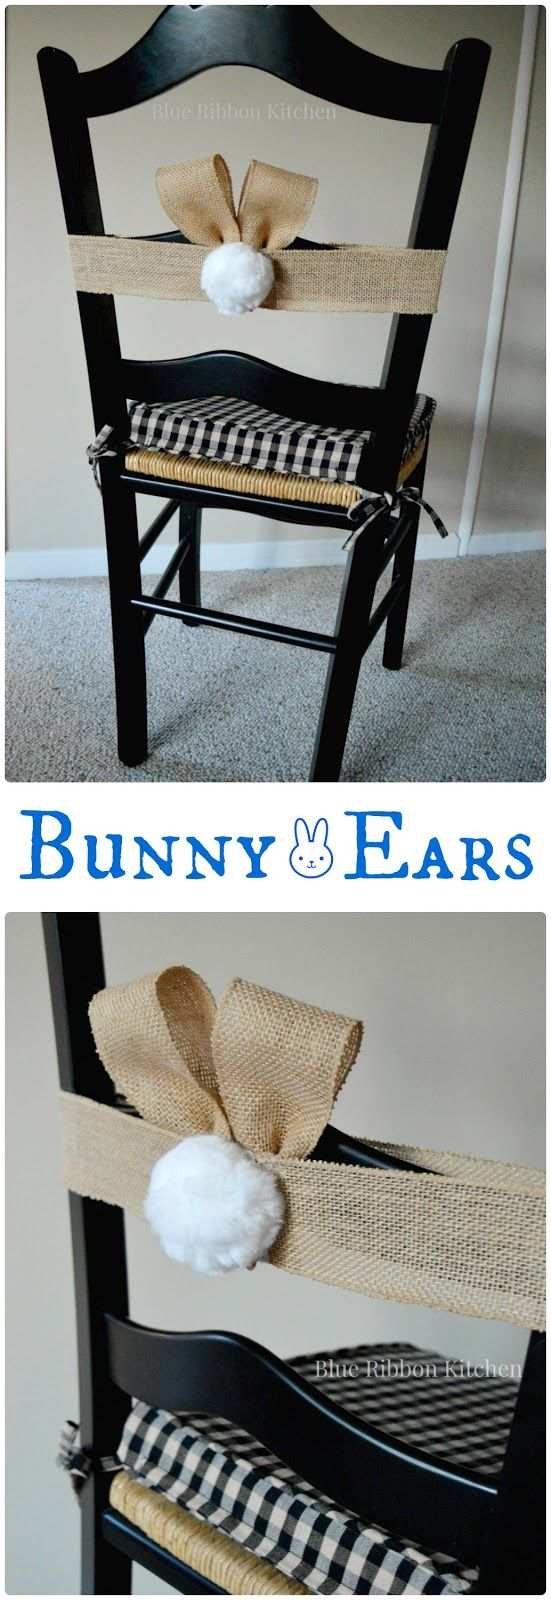 diy-chairs-with-bunny-ears-easter-decor